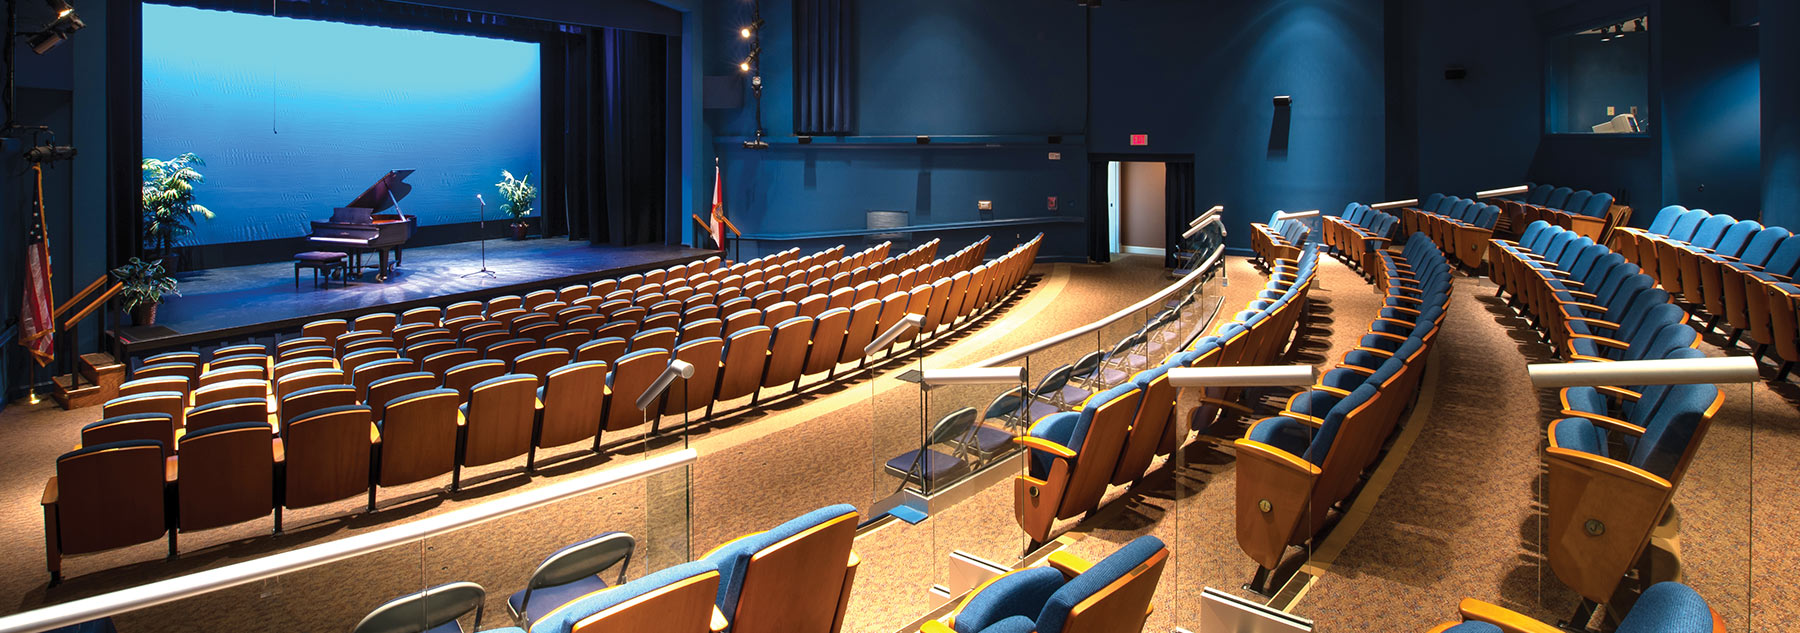 Glenridge Performing Arts - The Glenridge on Palmer Ranch - Sarasota